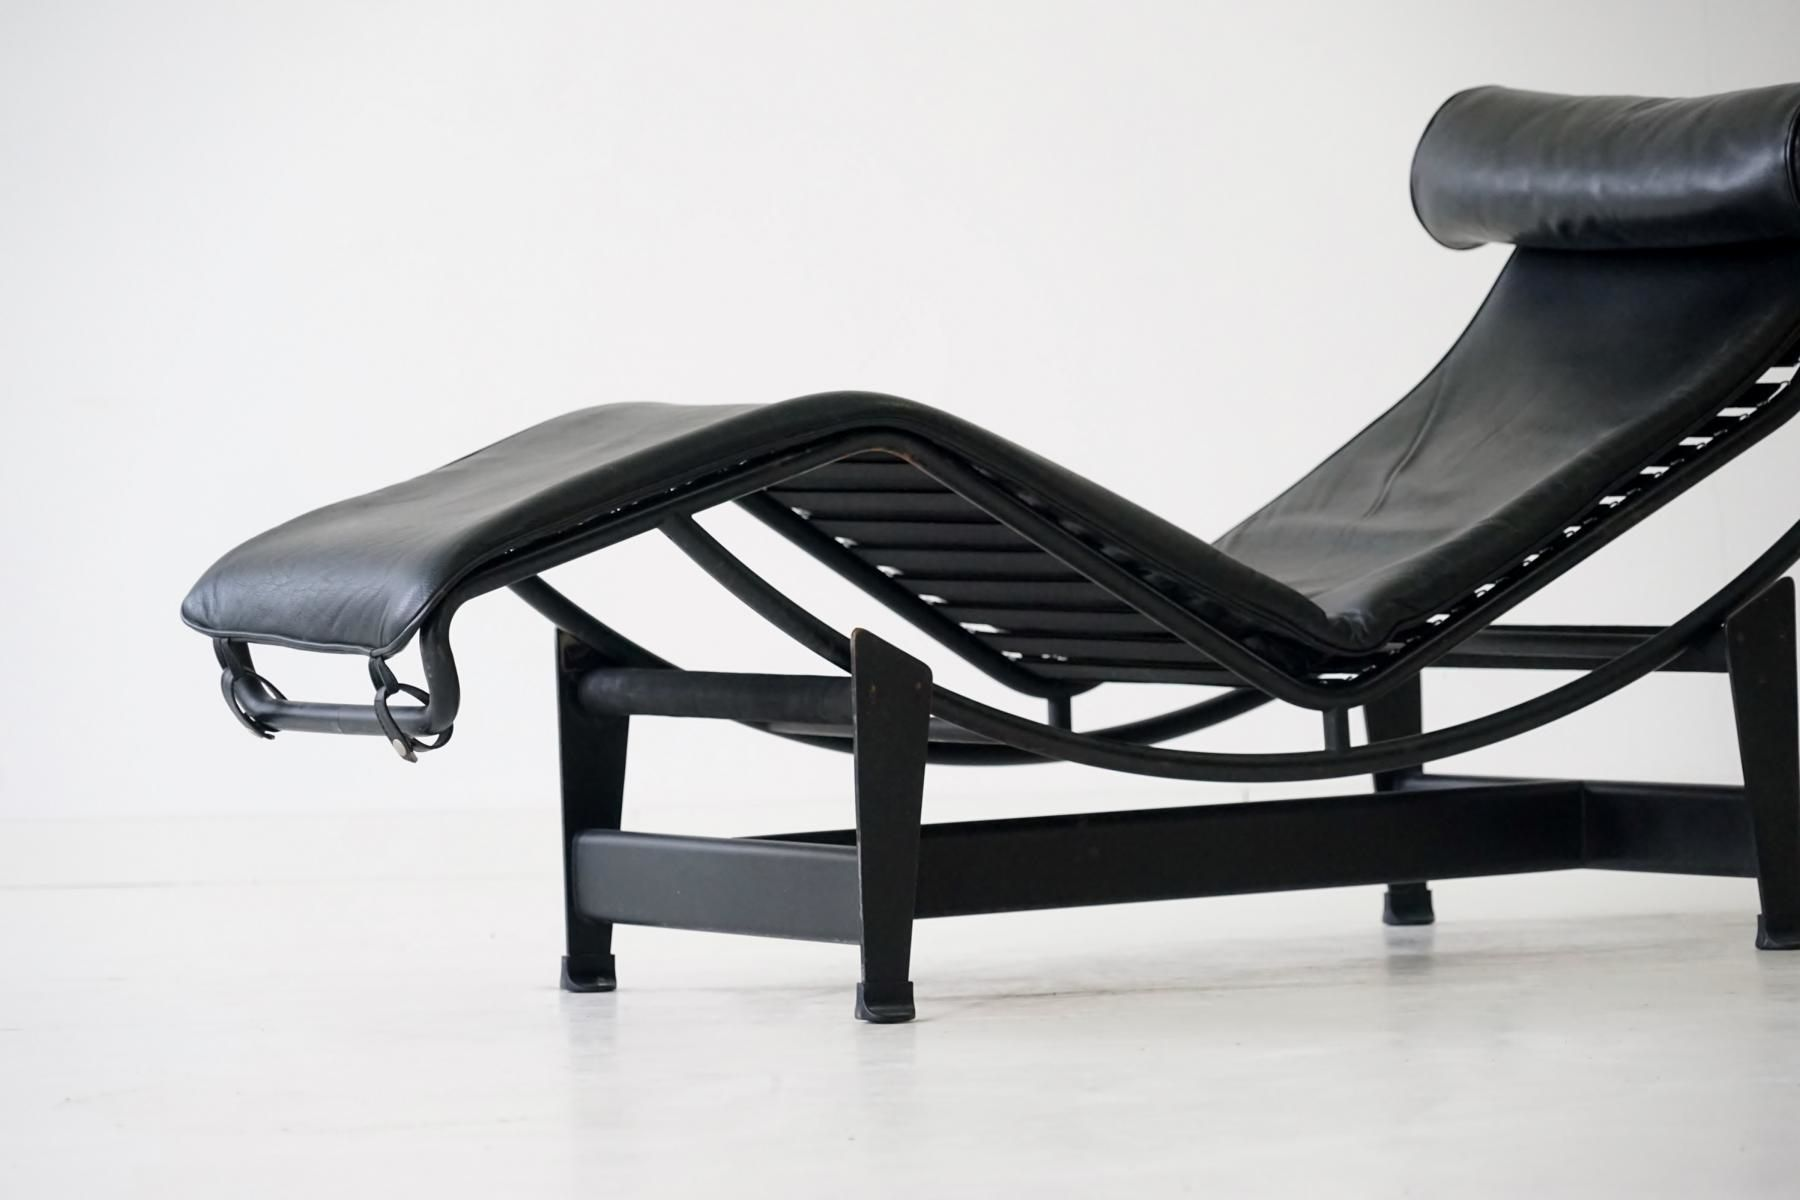 Vintage LC4 Chaise Longue By Le Corbusier For Cassina